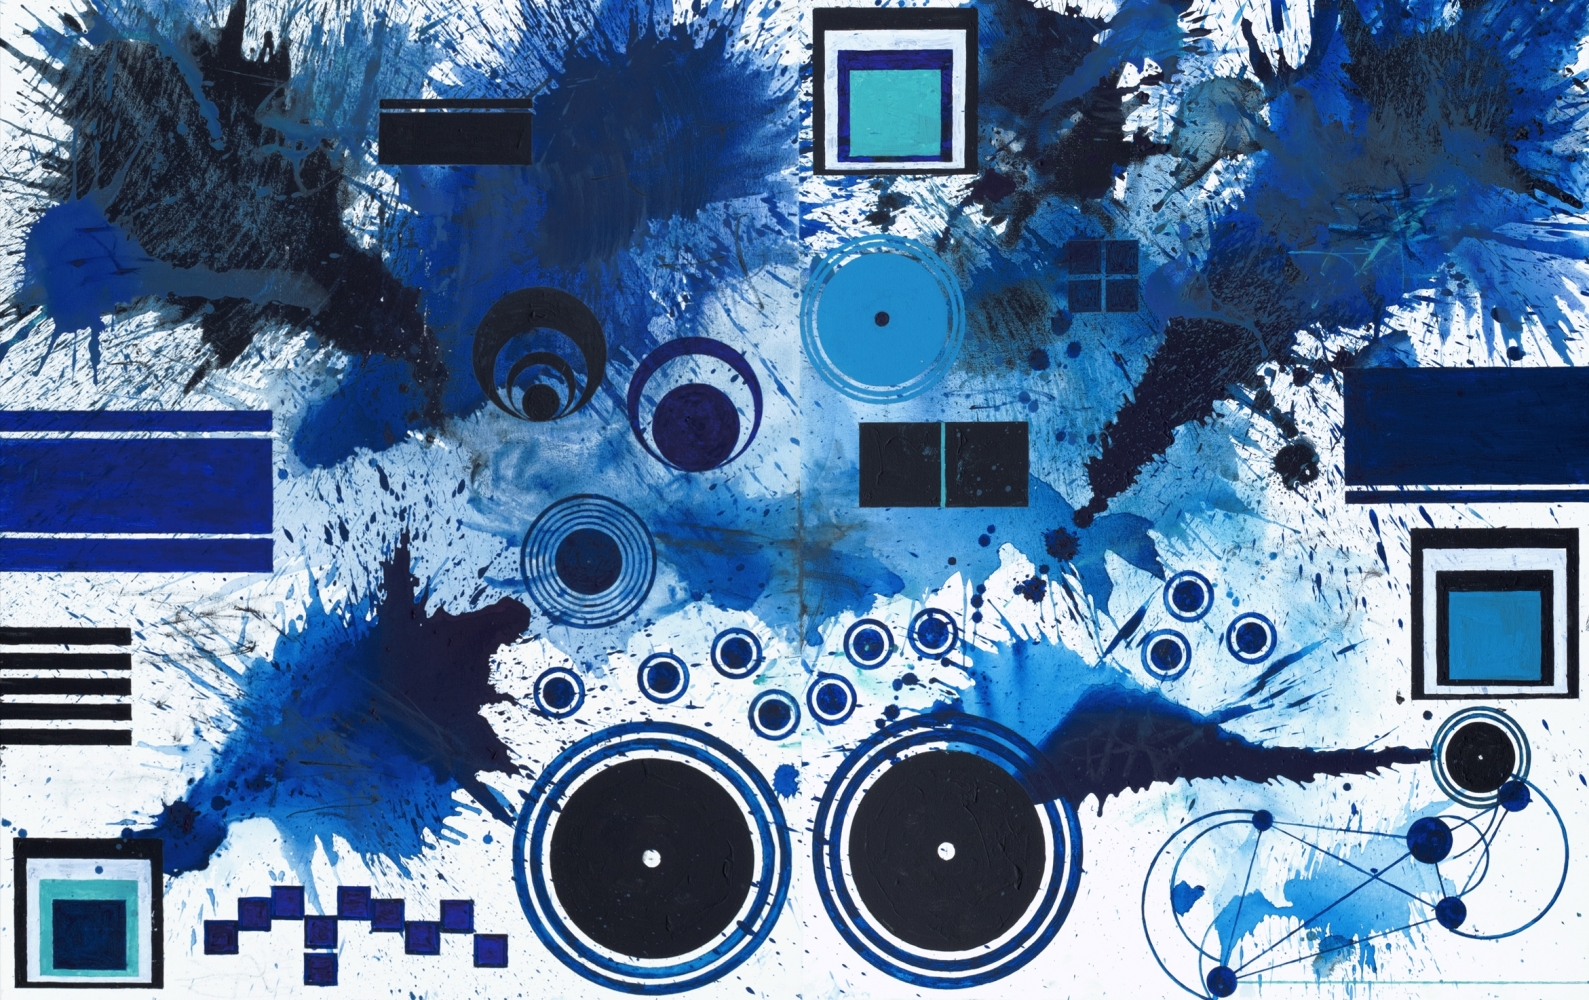 J. Steven Manolis, BlueLand Splash (Malibu), 2018, 60 x 96 inches, Acrylic paintings on canvas, Extra large Wall Art, Blue Abstract Art for sale at Manolis Projects Art Gallery, Miami, Fl